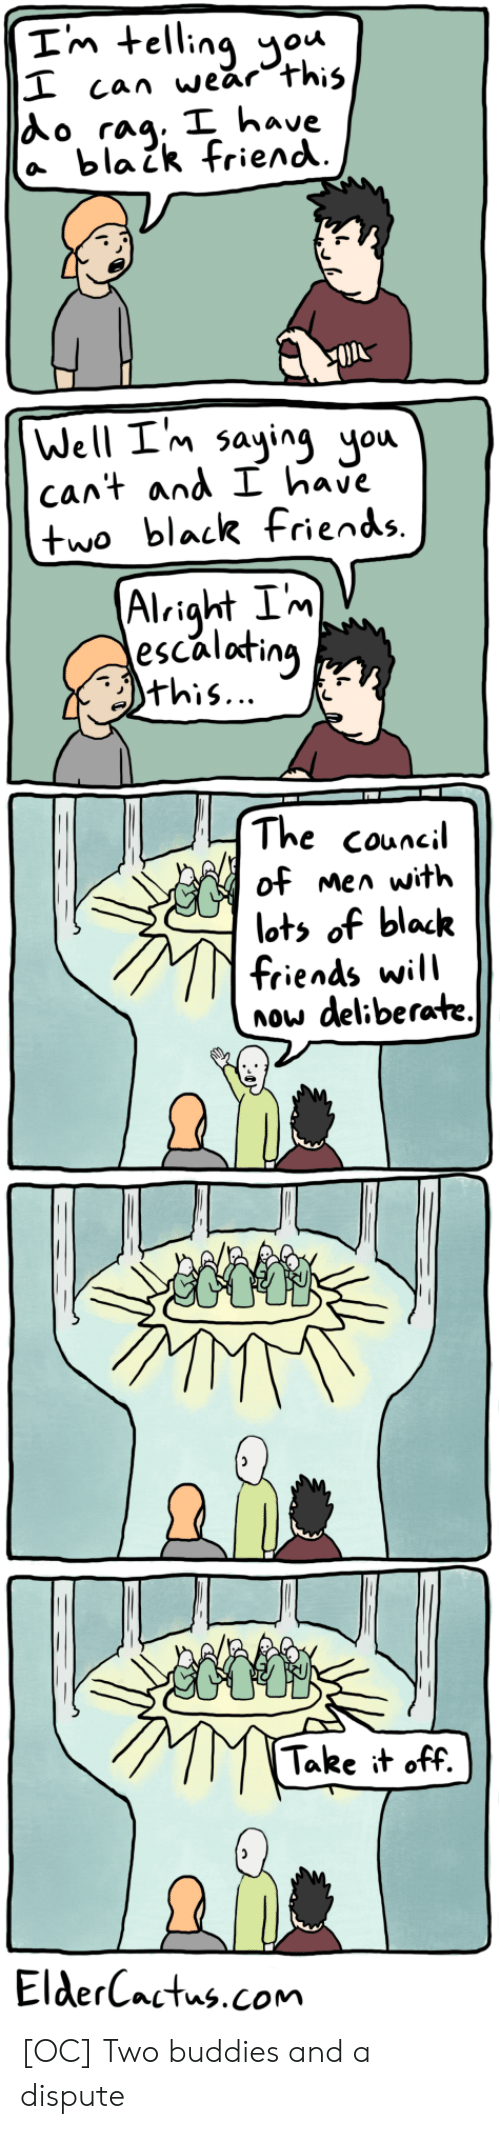 Friends, Black, and Alright: Im telling ou  I can wear this  Ao rag. I have  a blaik friend  Well I'm saying you  cant and I have  two black fiends.  Alright Im  escalating  this...  The council  of men with  lots of black  friends will  now deliberate.  Take it off.  ElderCactus.com [OC] Two buddies and a dispute